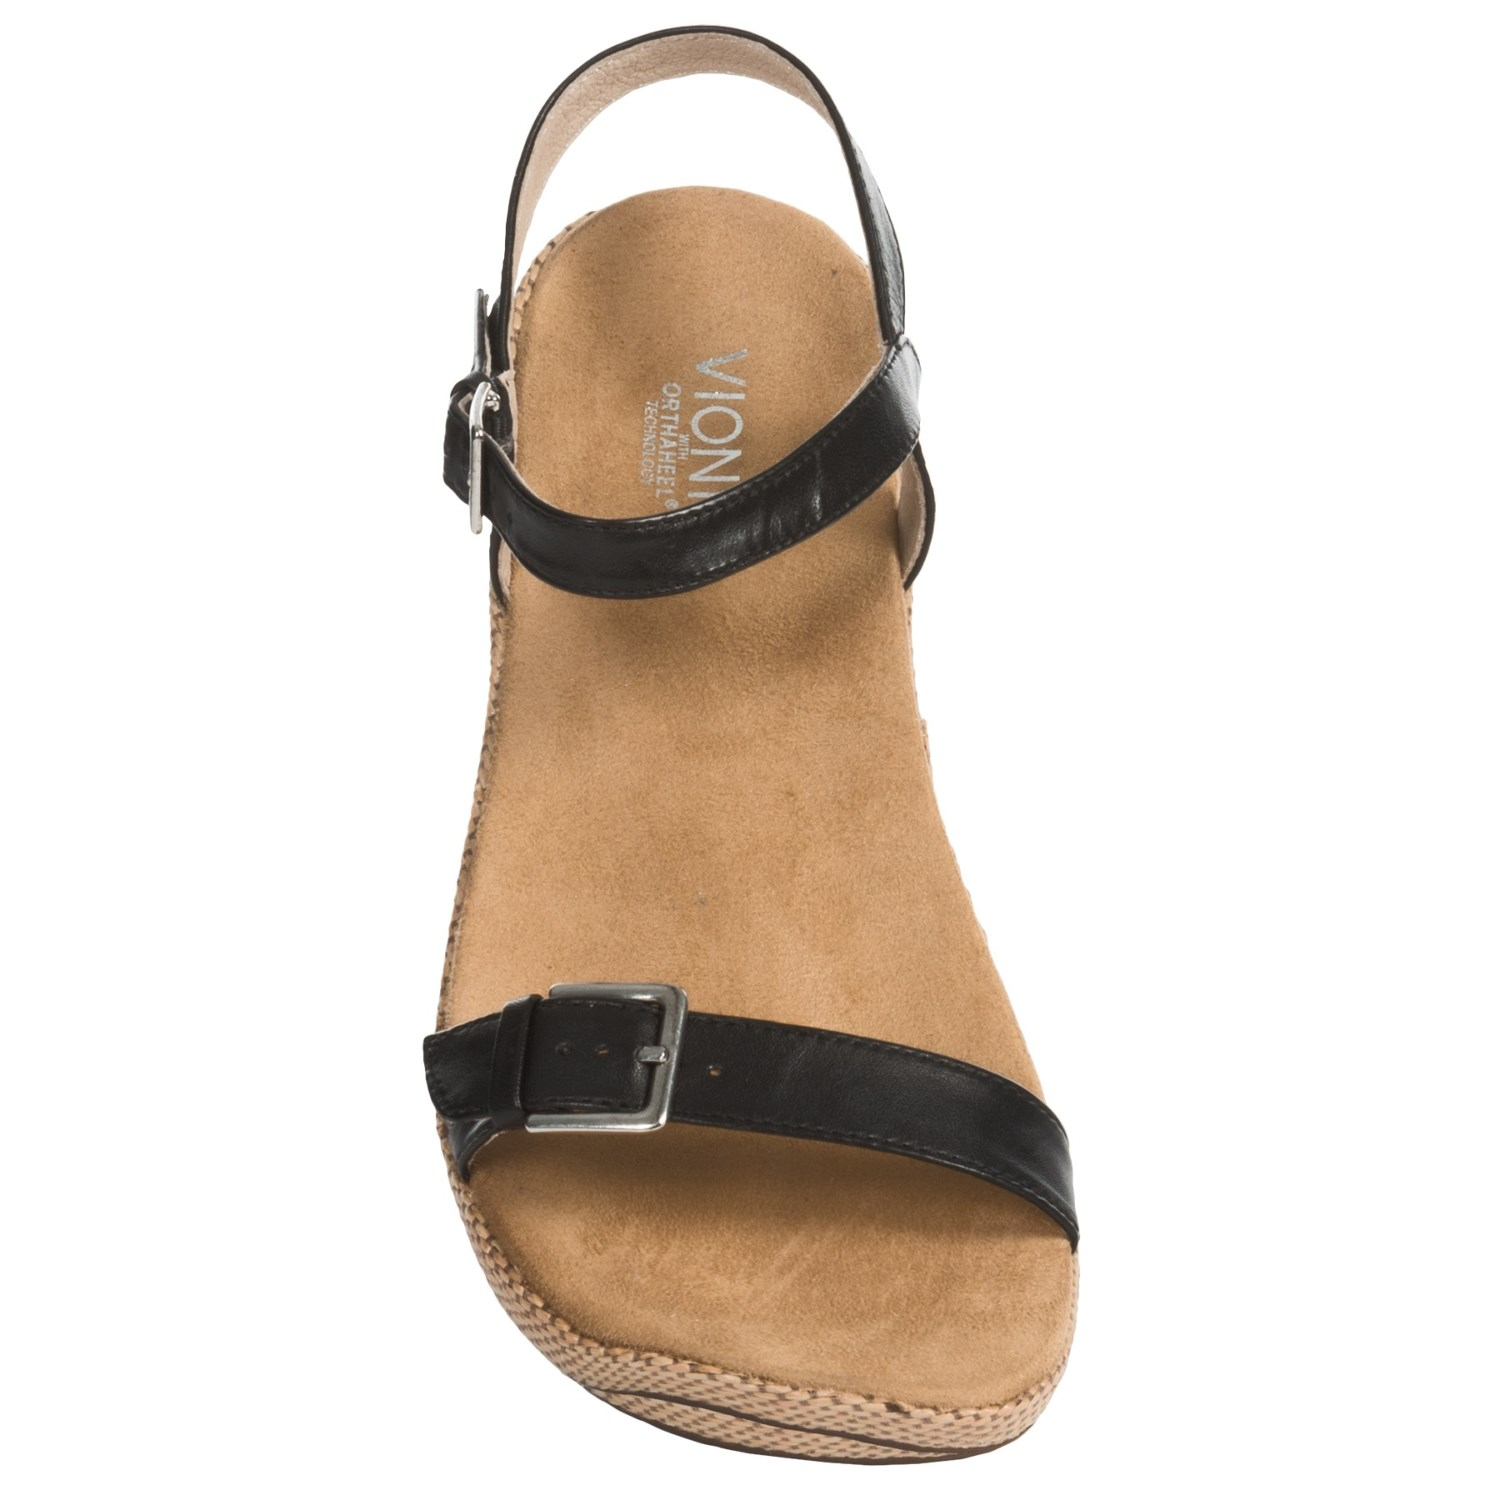 Orthaheel Sandals Clearance 28 Images Vionic With